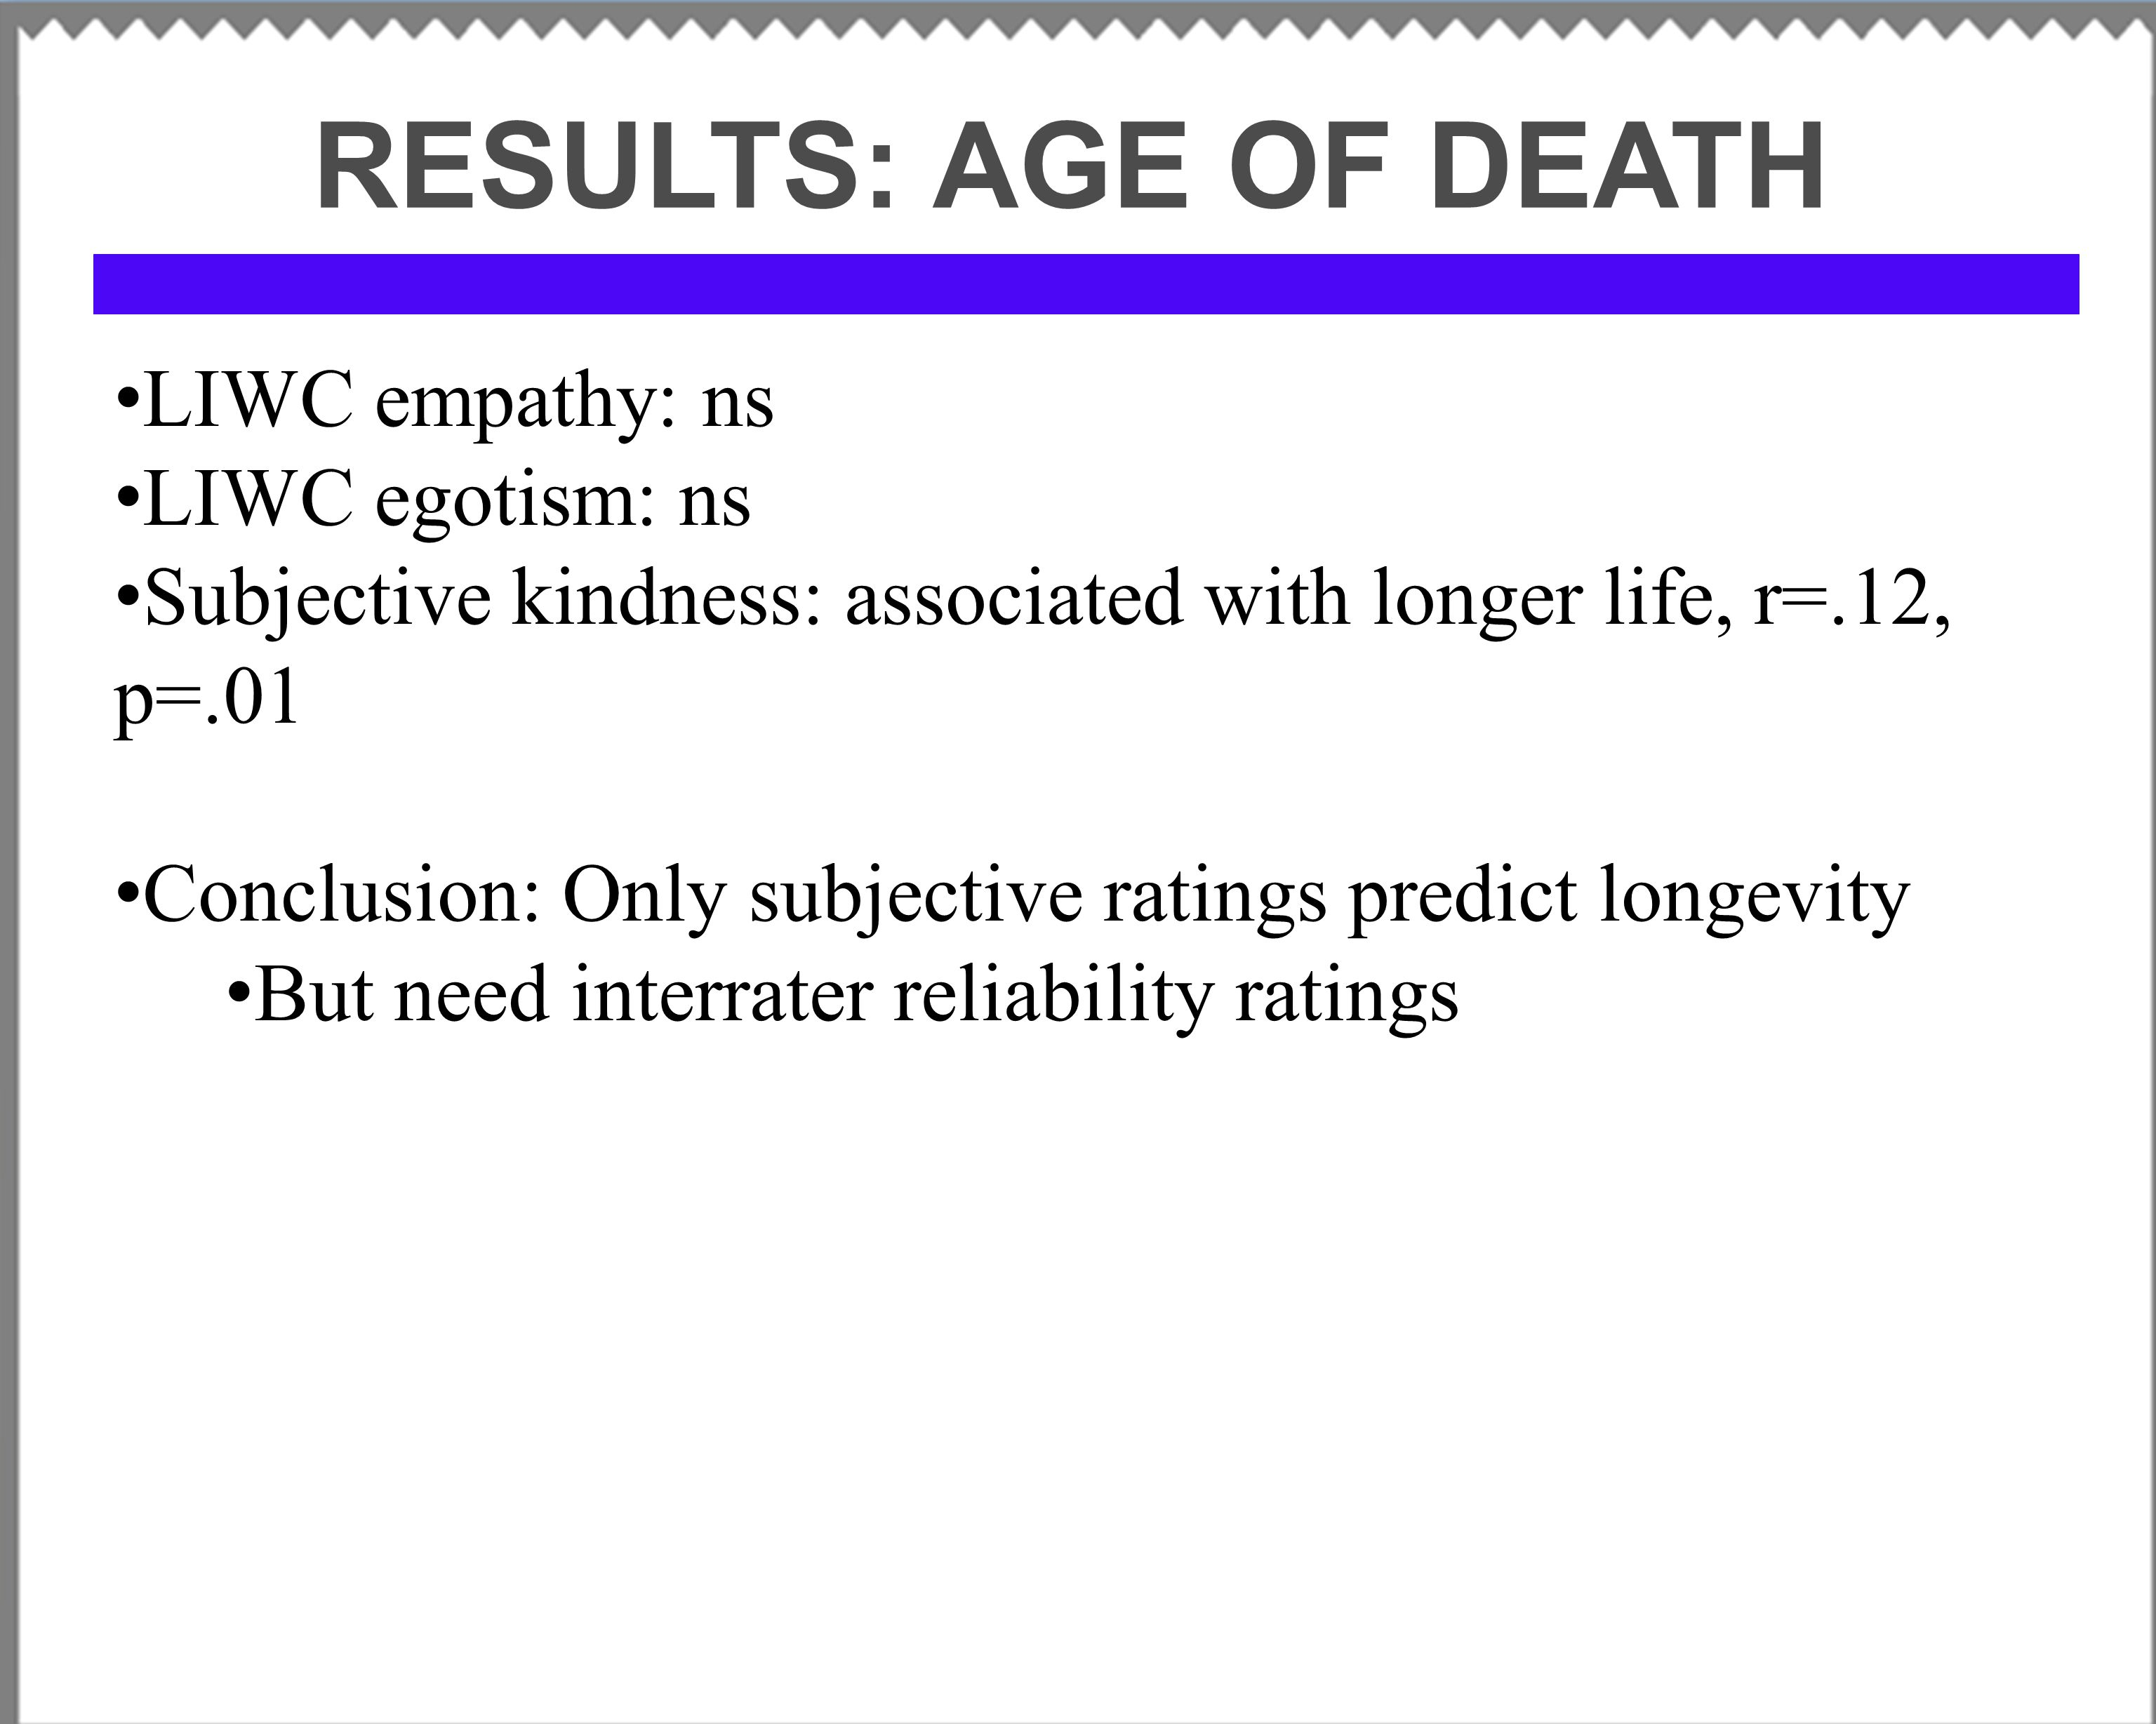 RESULTS: AGE OF DEATH LIWC empathy: ns LIWC egotism: ns Subjective kindness: associated with longer life, r=.12, p=.01 Conclusion: Only subjective ratings predict longevity But need interrater reliability ratings